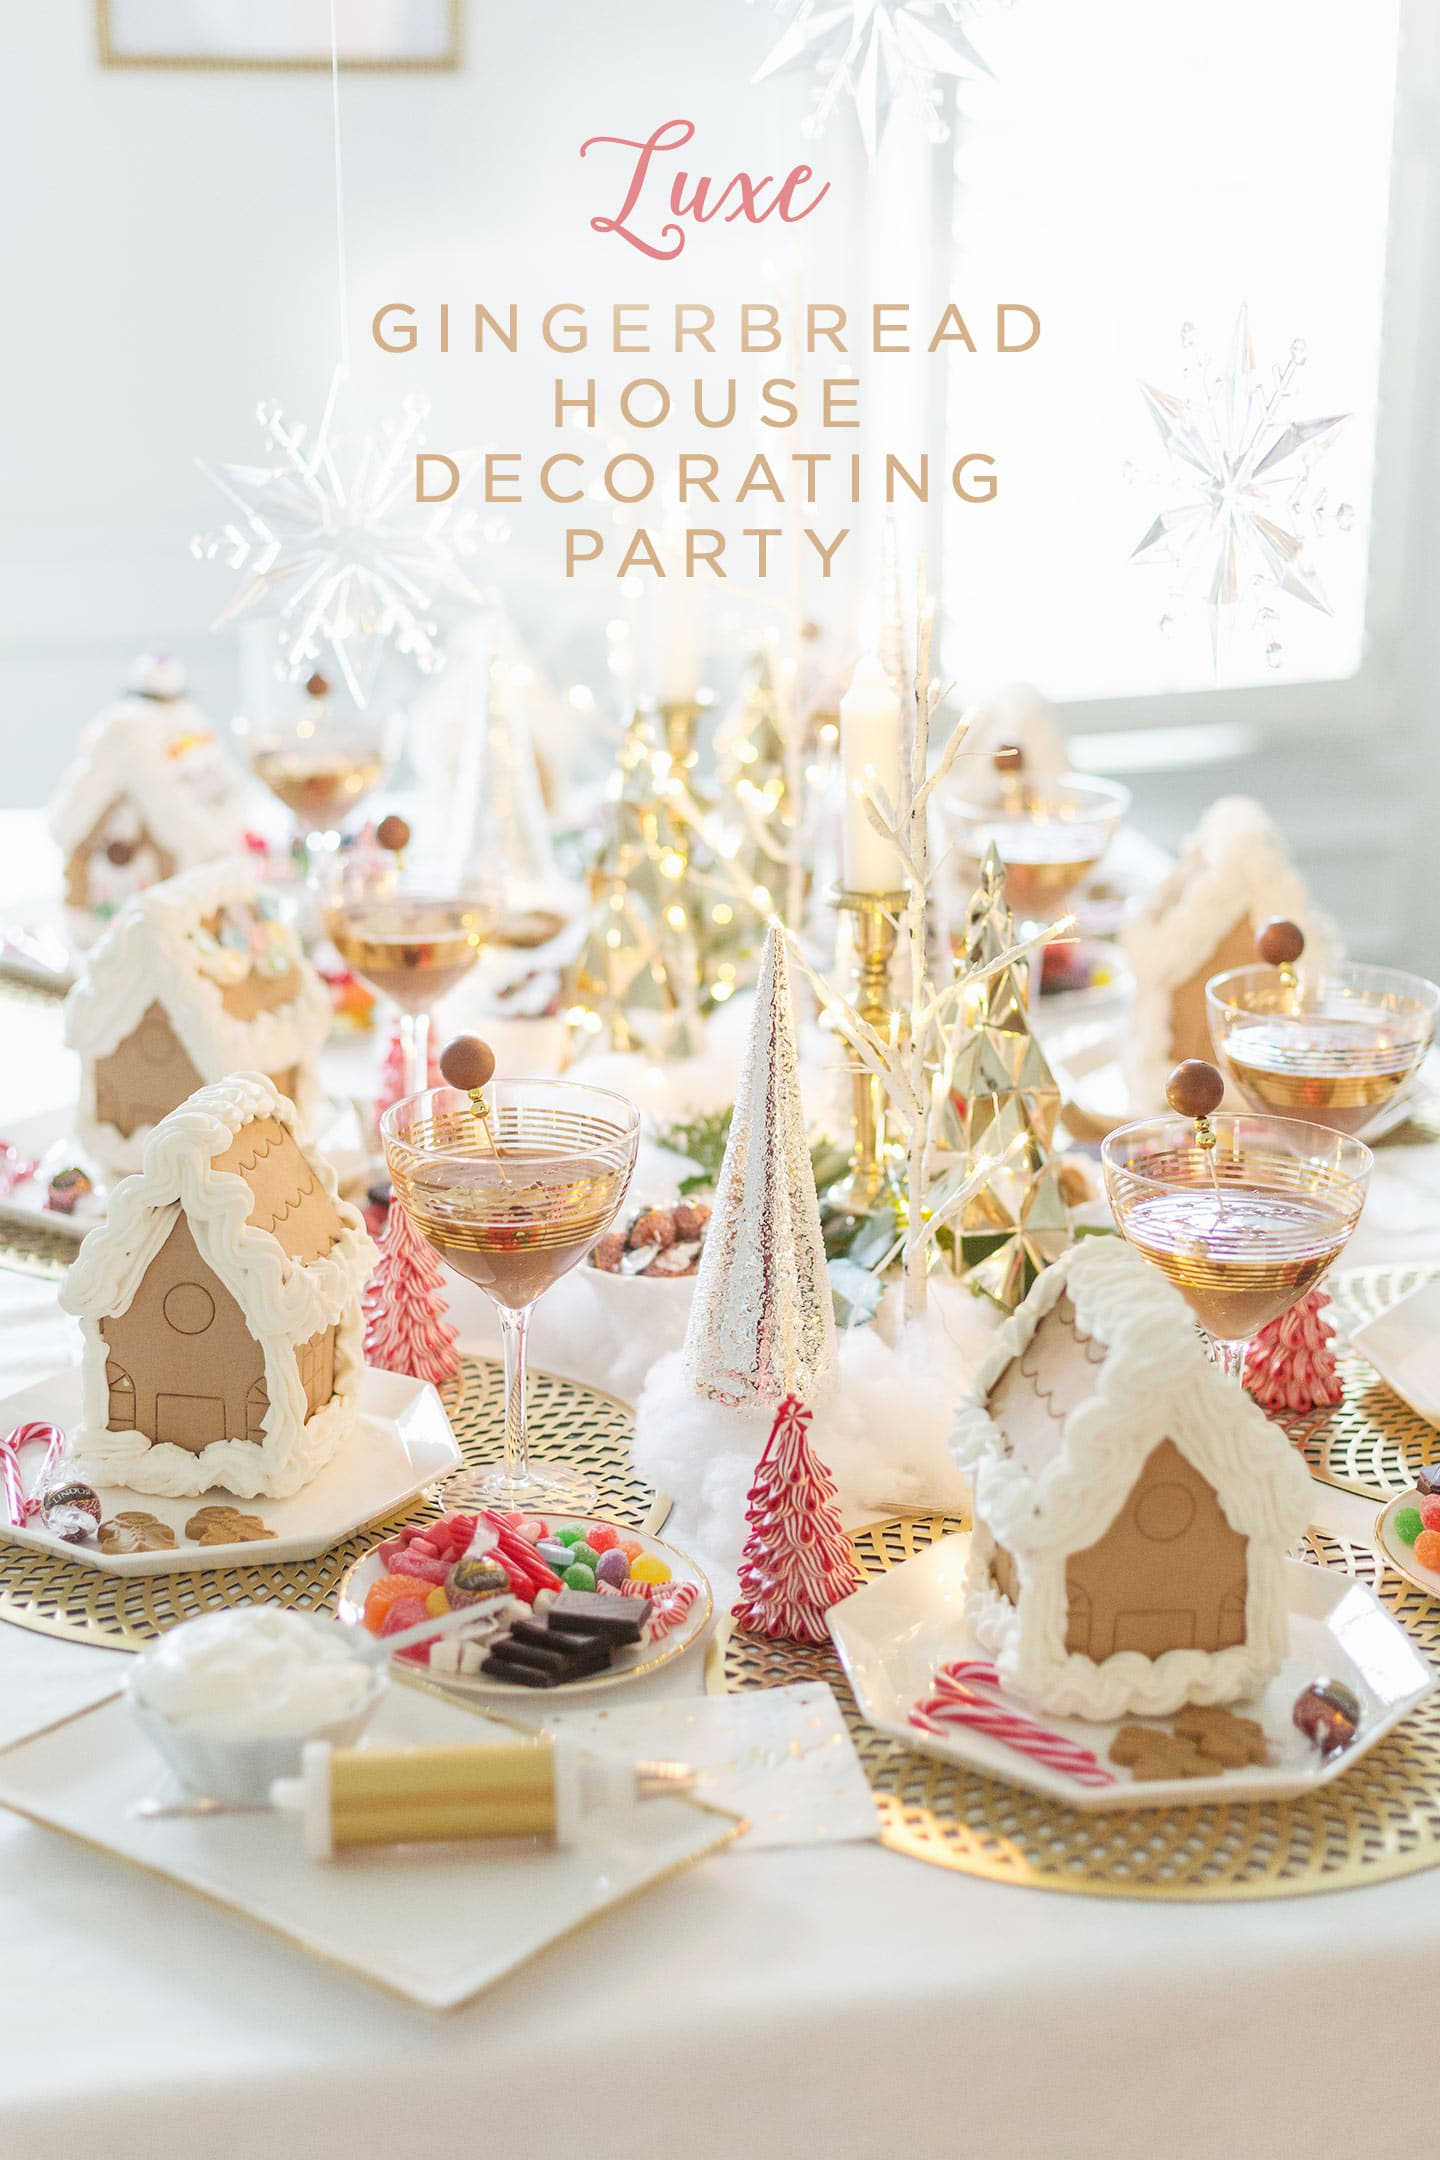 Luxe Gingerbread House Decorating Party and Gingerbread Truffle Martinis!